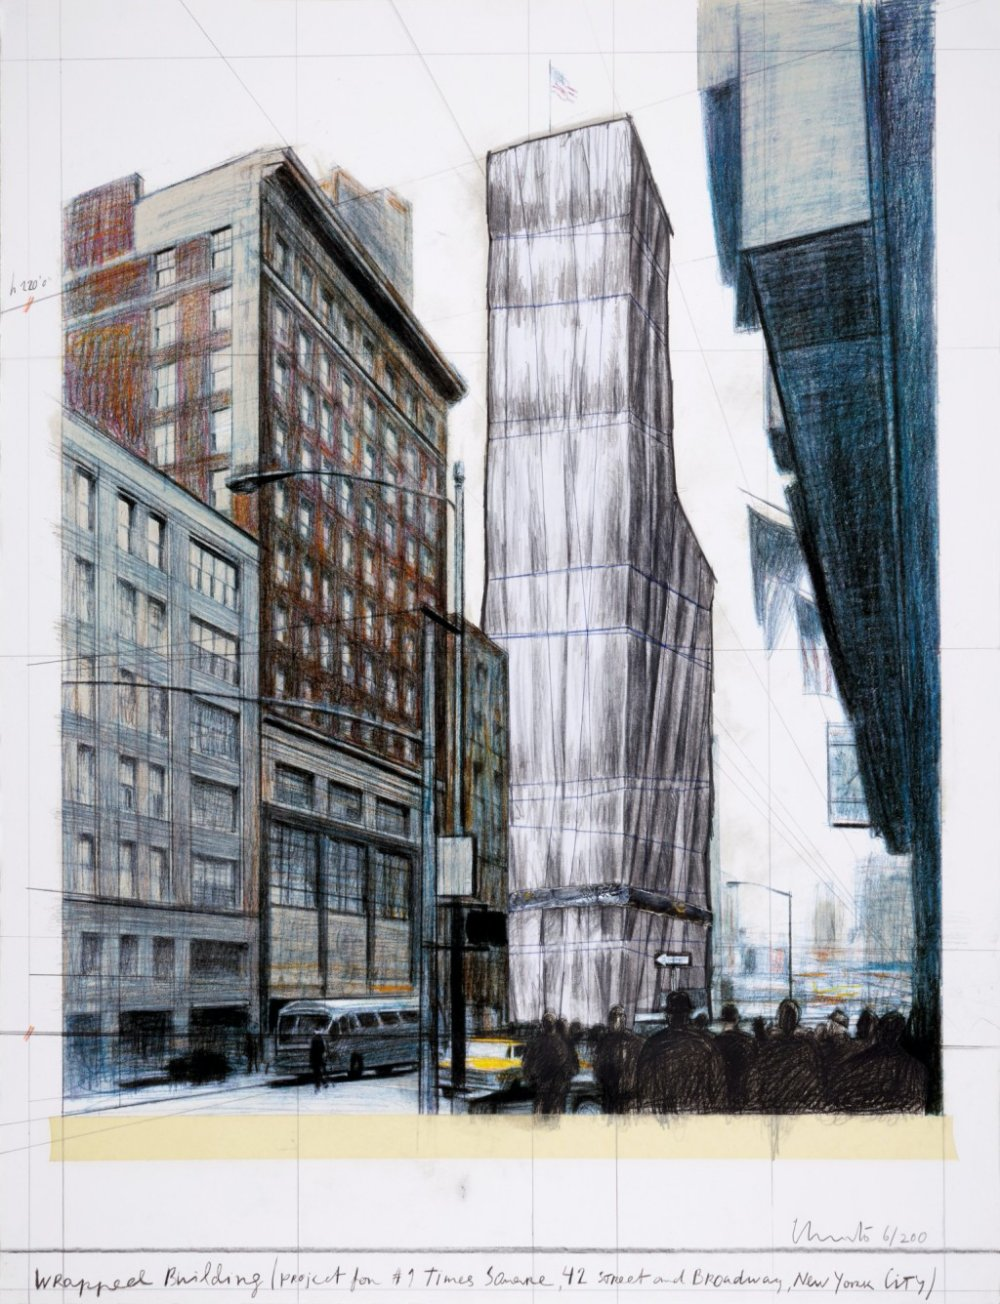 Wrapped Building, Project for #1 Times Square (Schellmann 187)